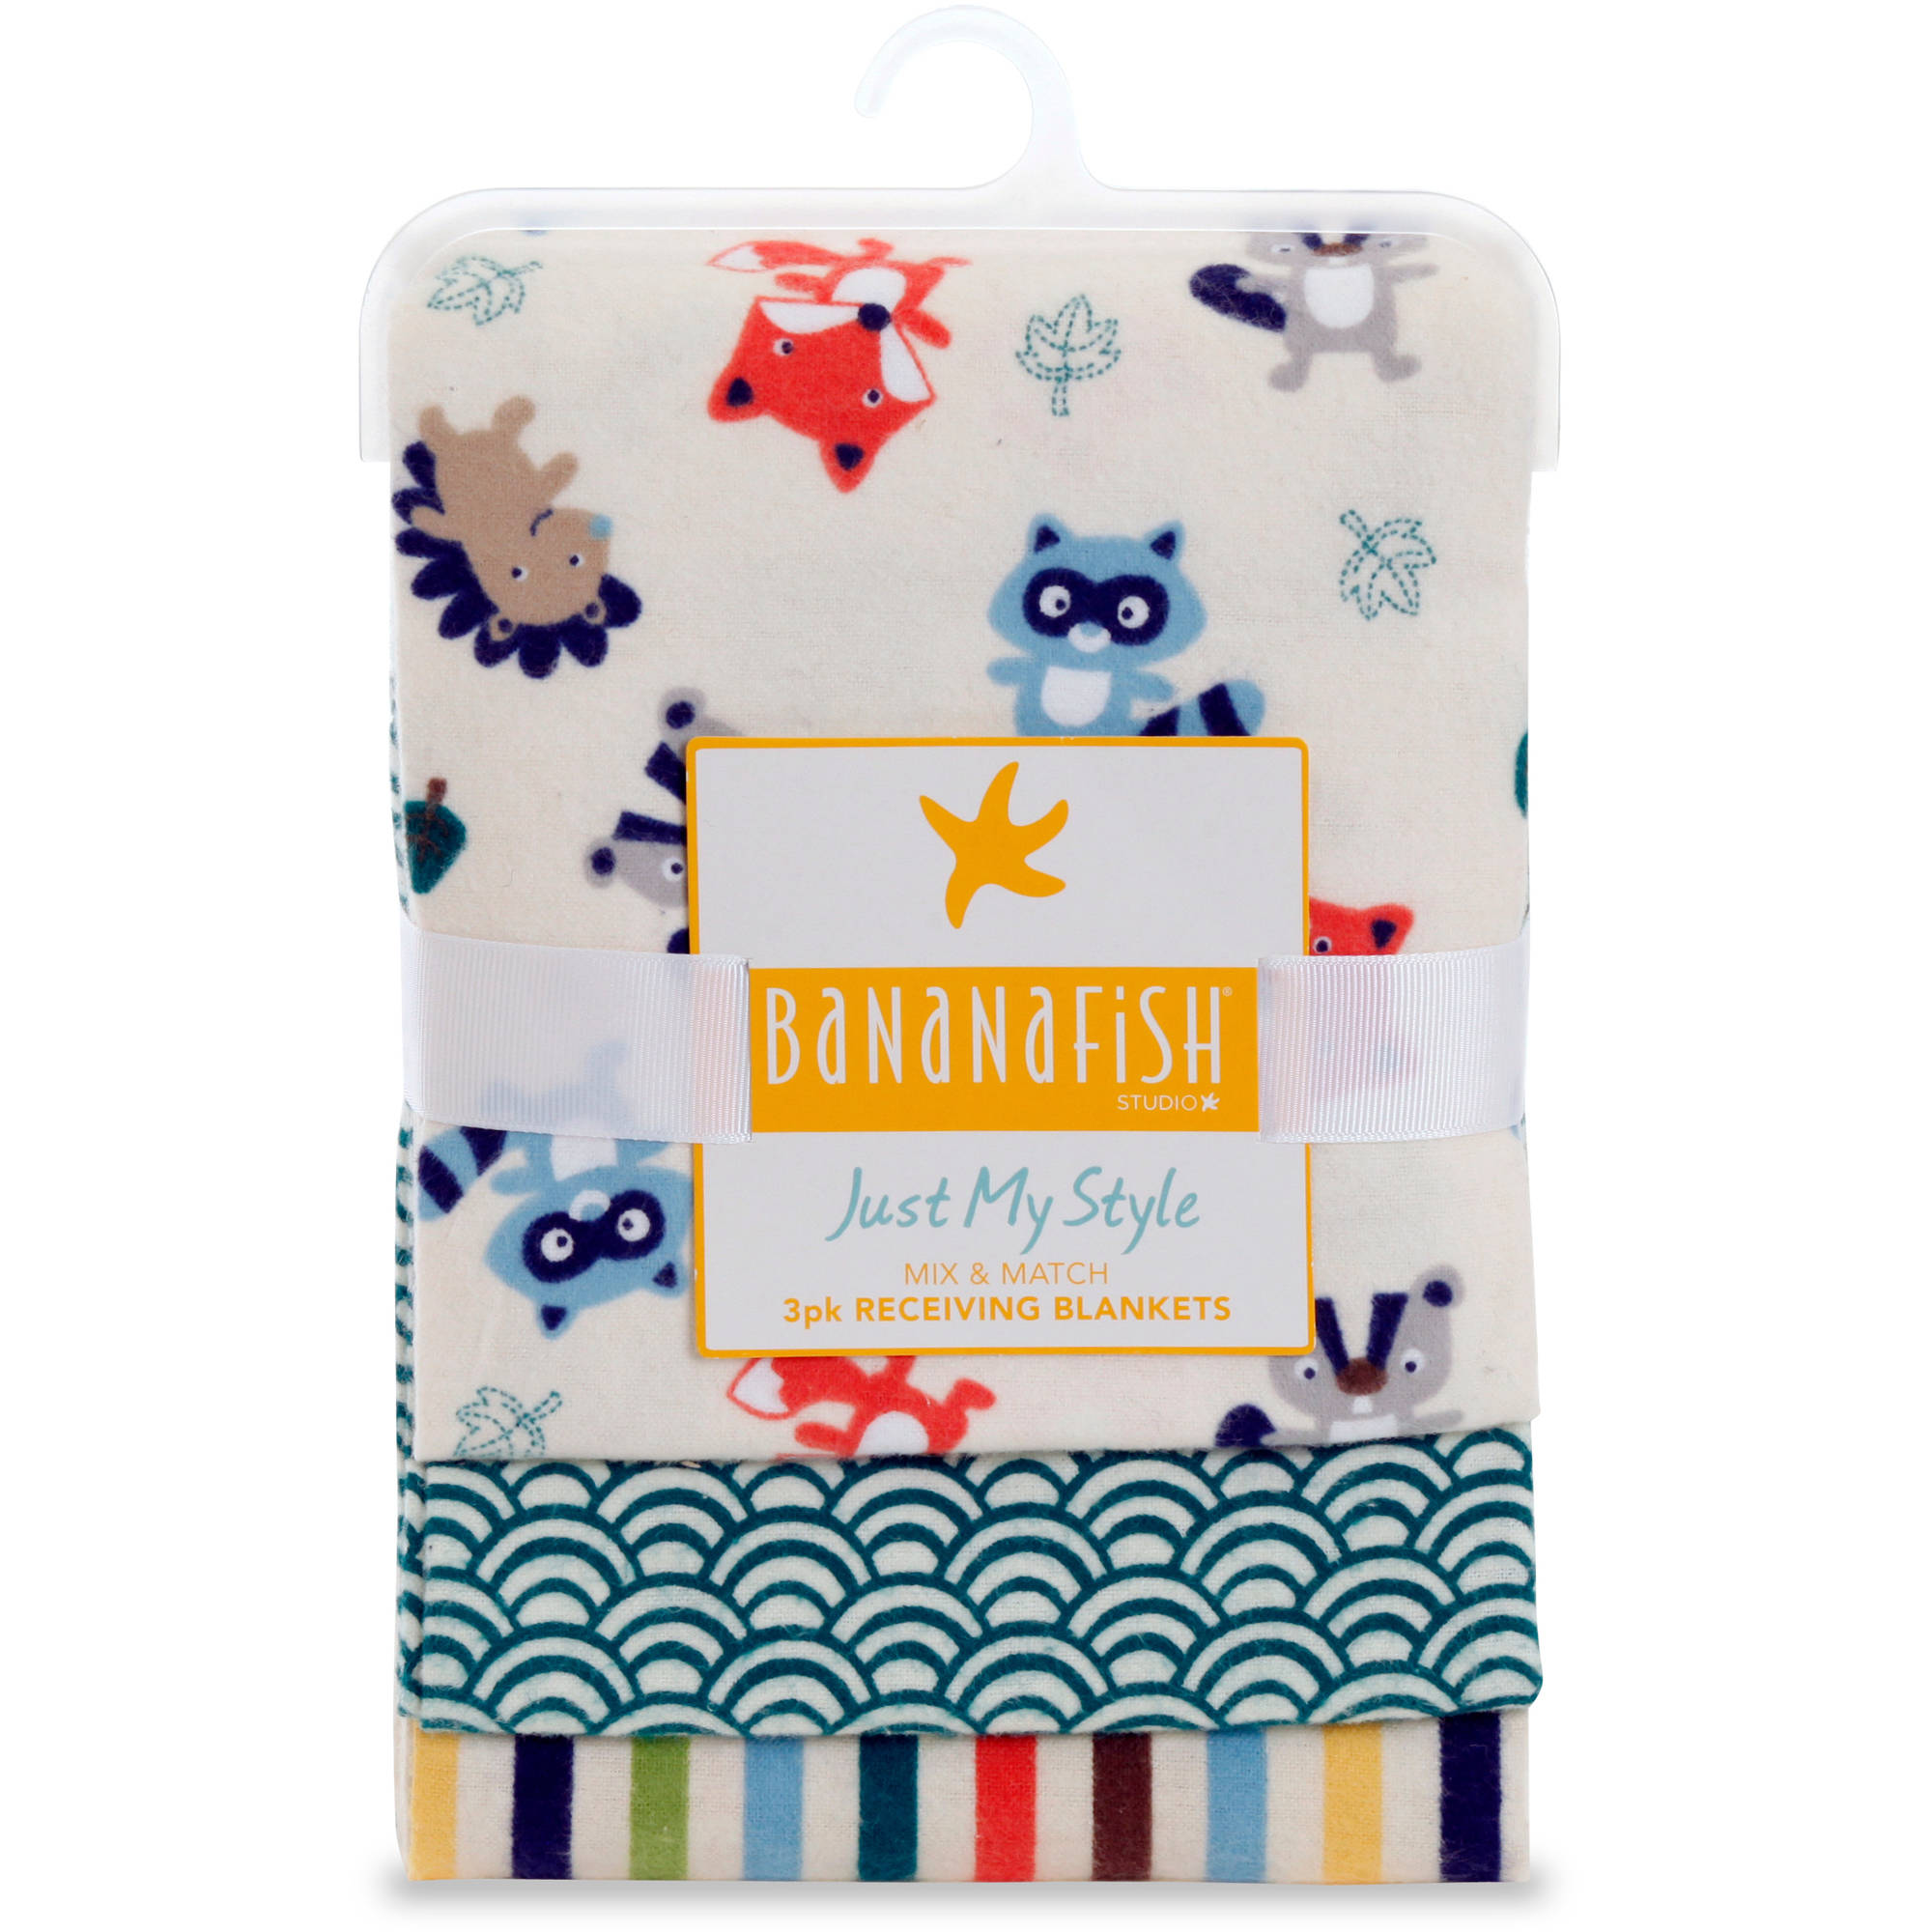 Bananafish Studio Forest Fun Receiving Blankets 3pk